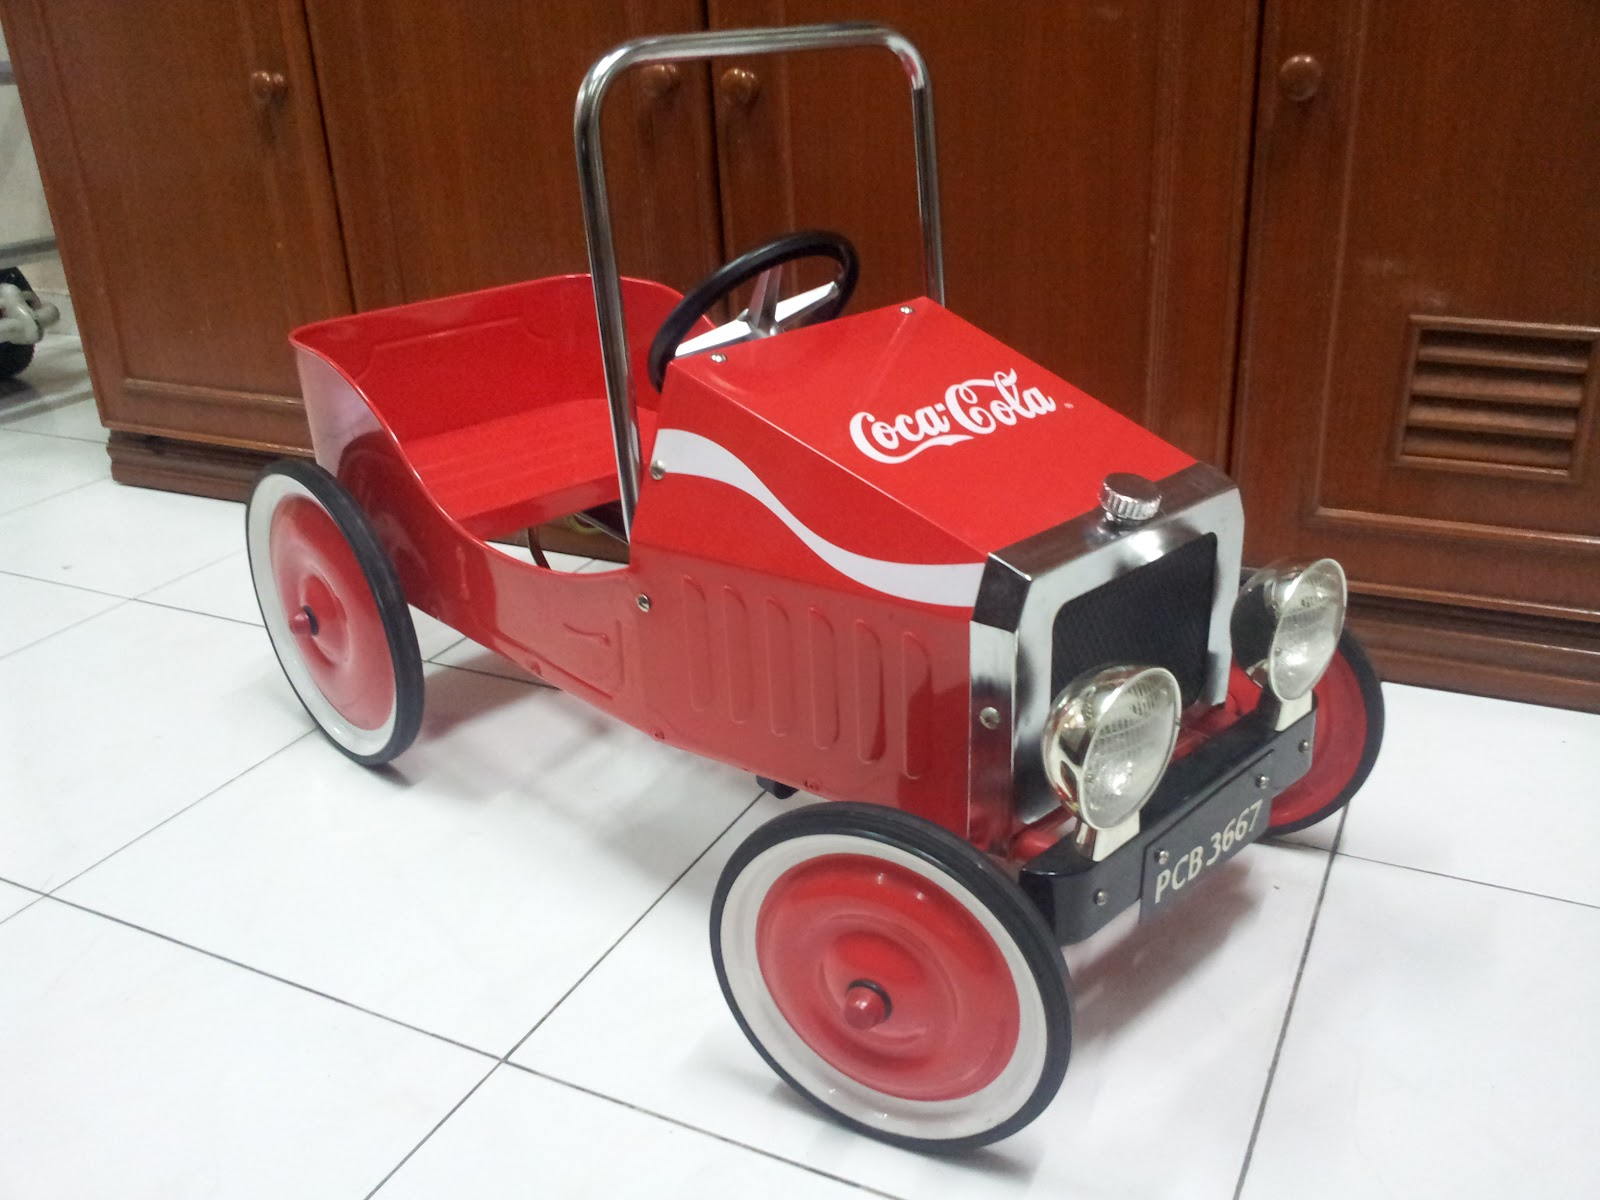 Antique Items For Sale: Pedal Cars